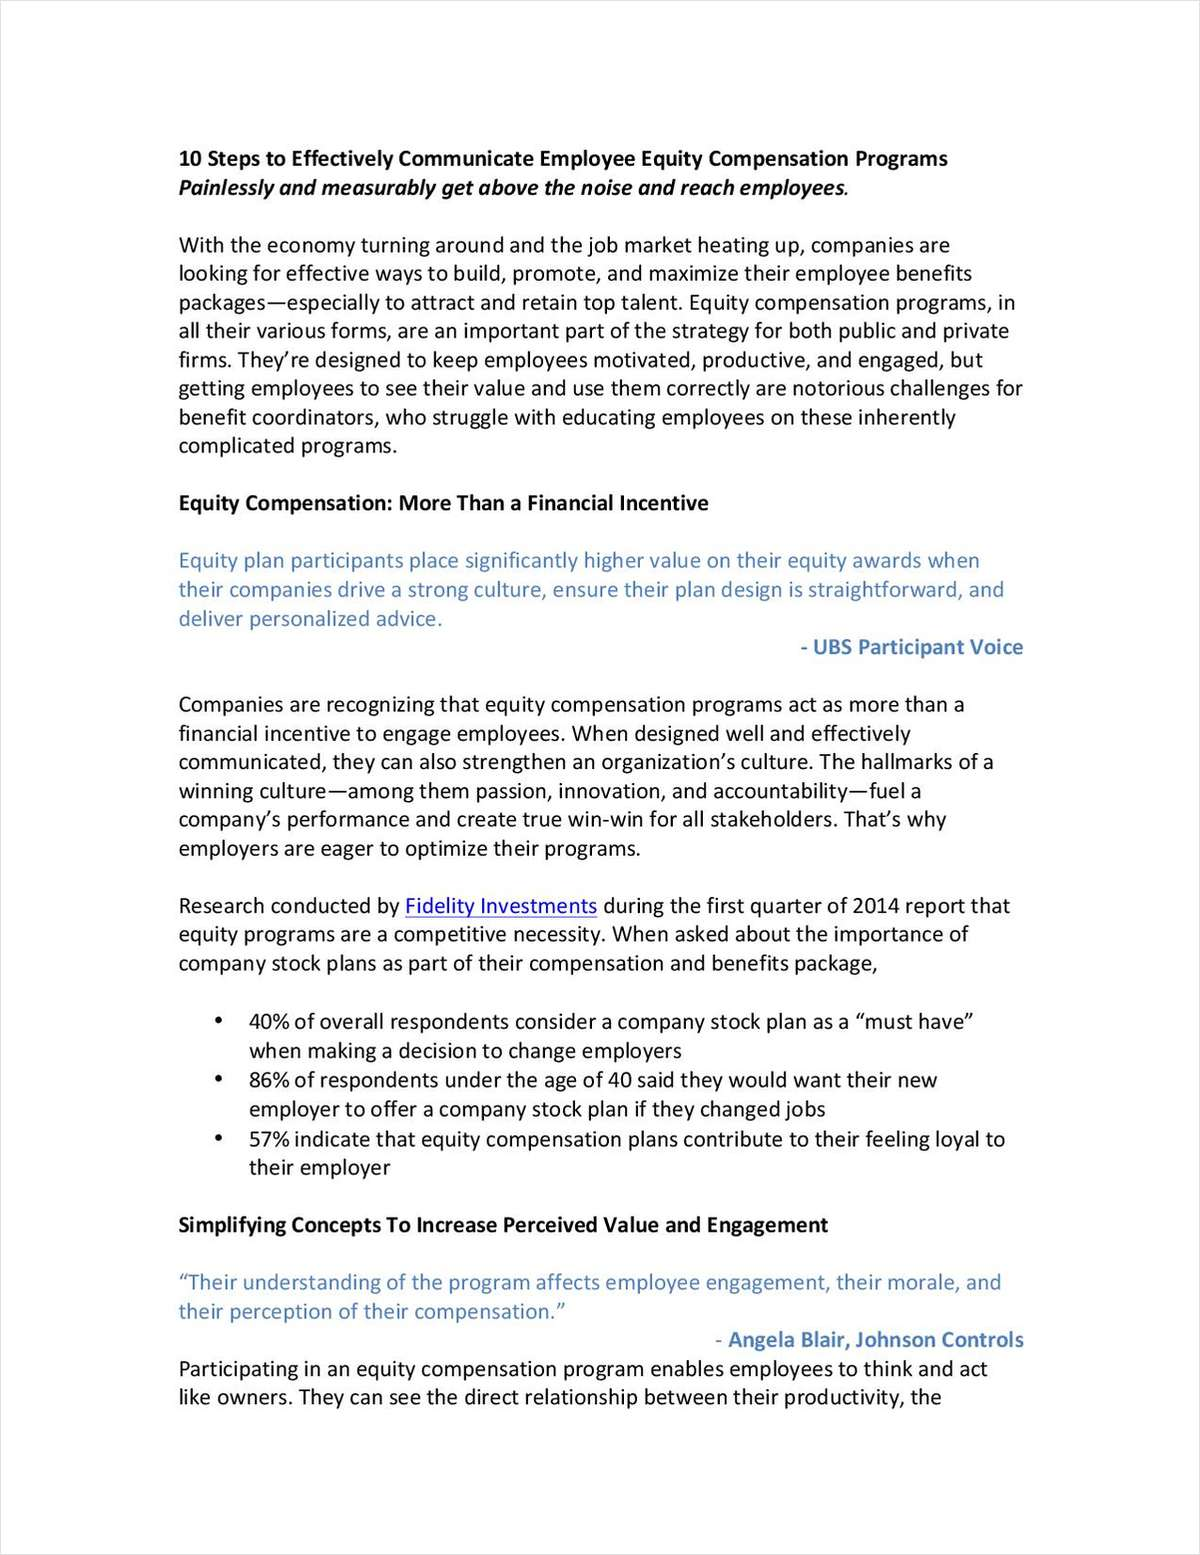 10 Steps to Effectively Communicate Employee Equity Compensation Programs